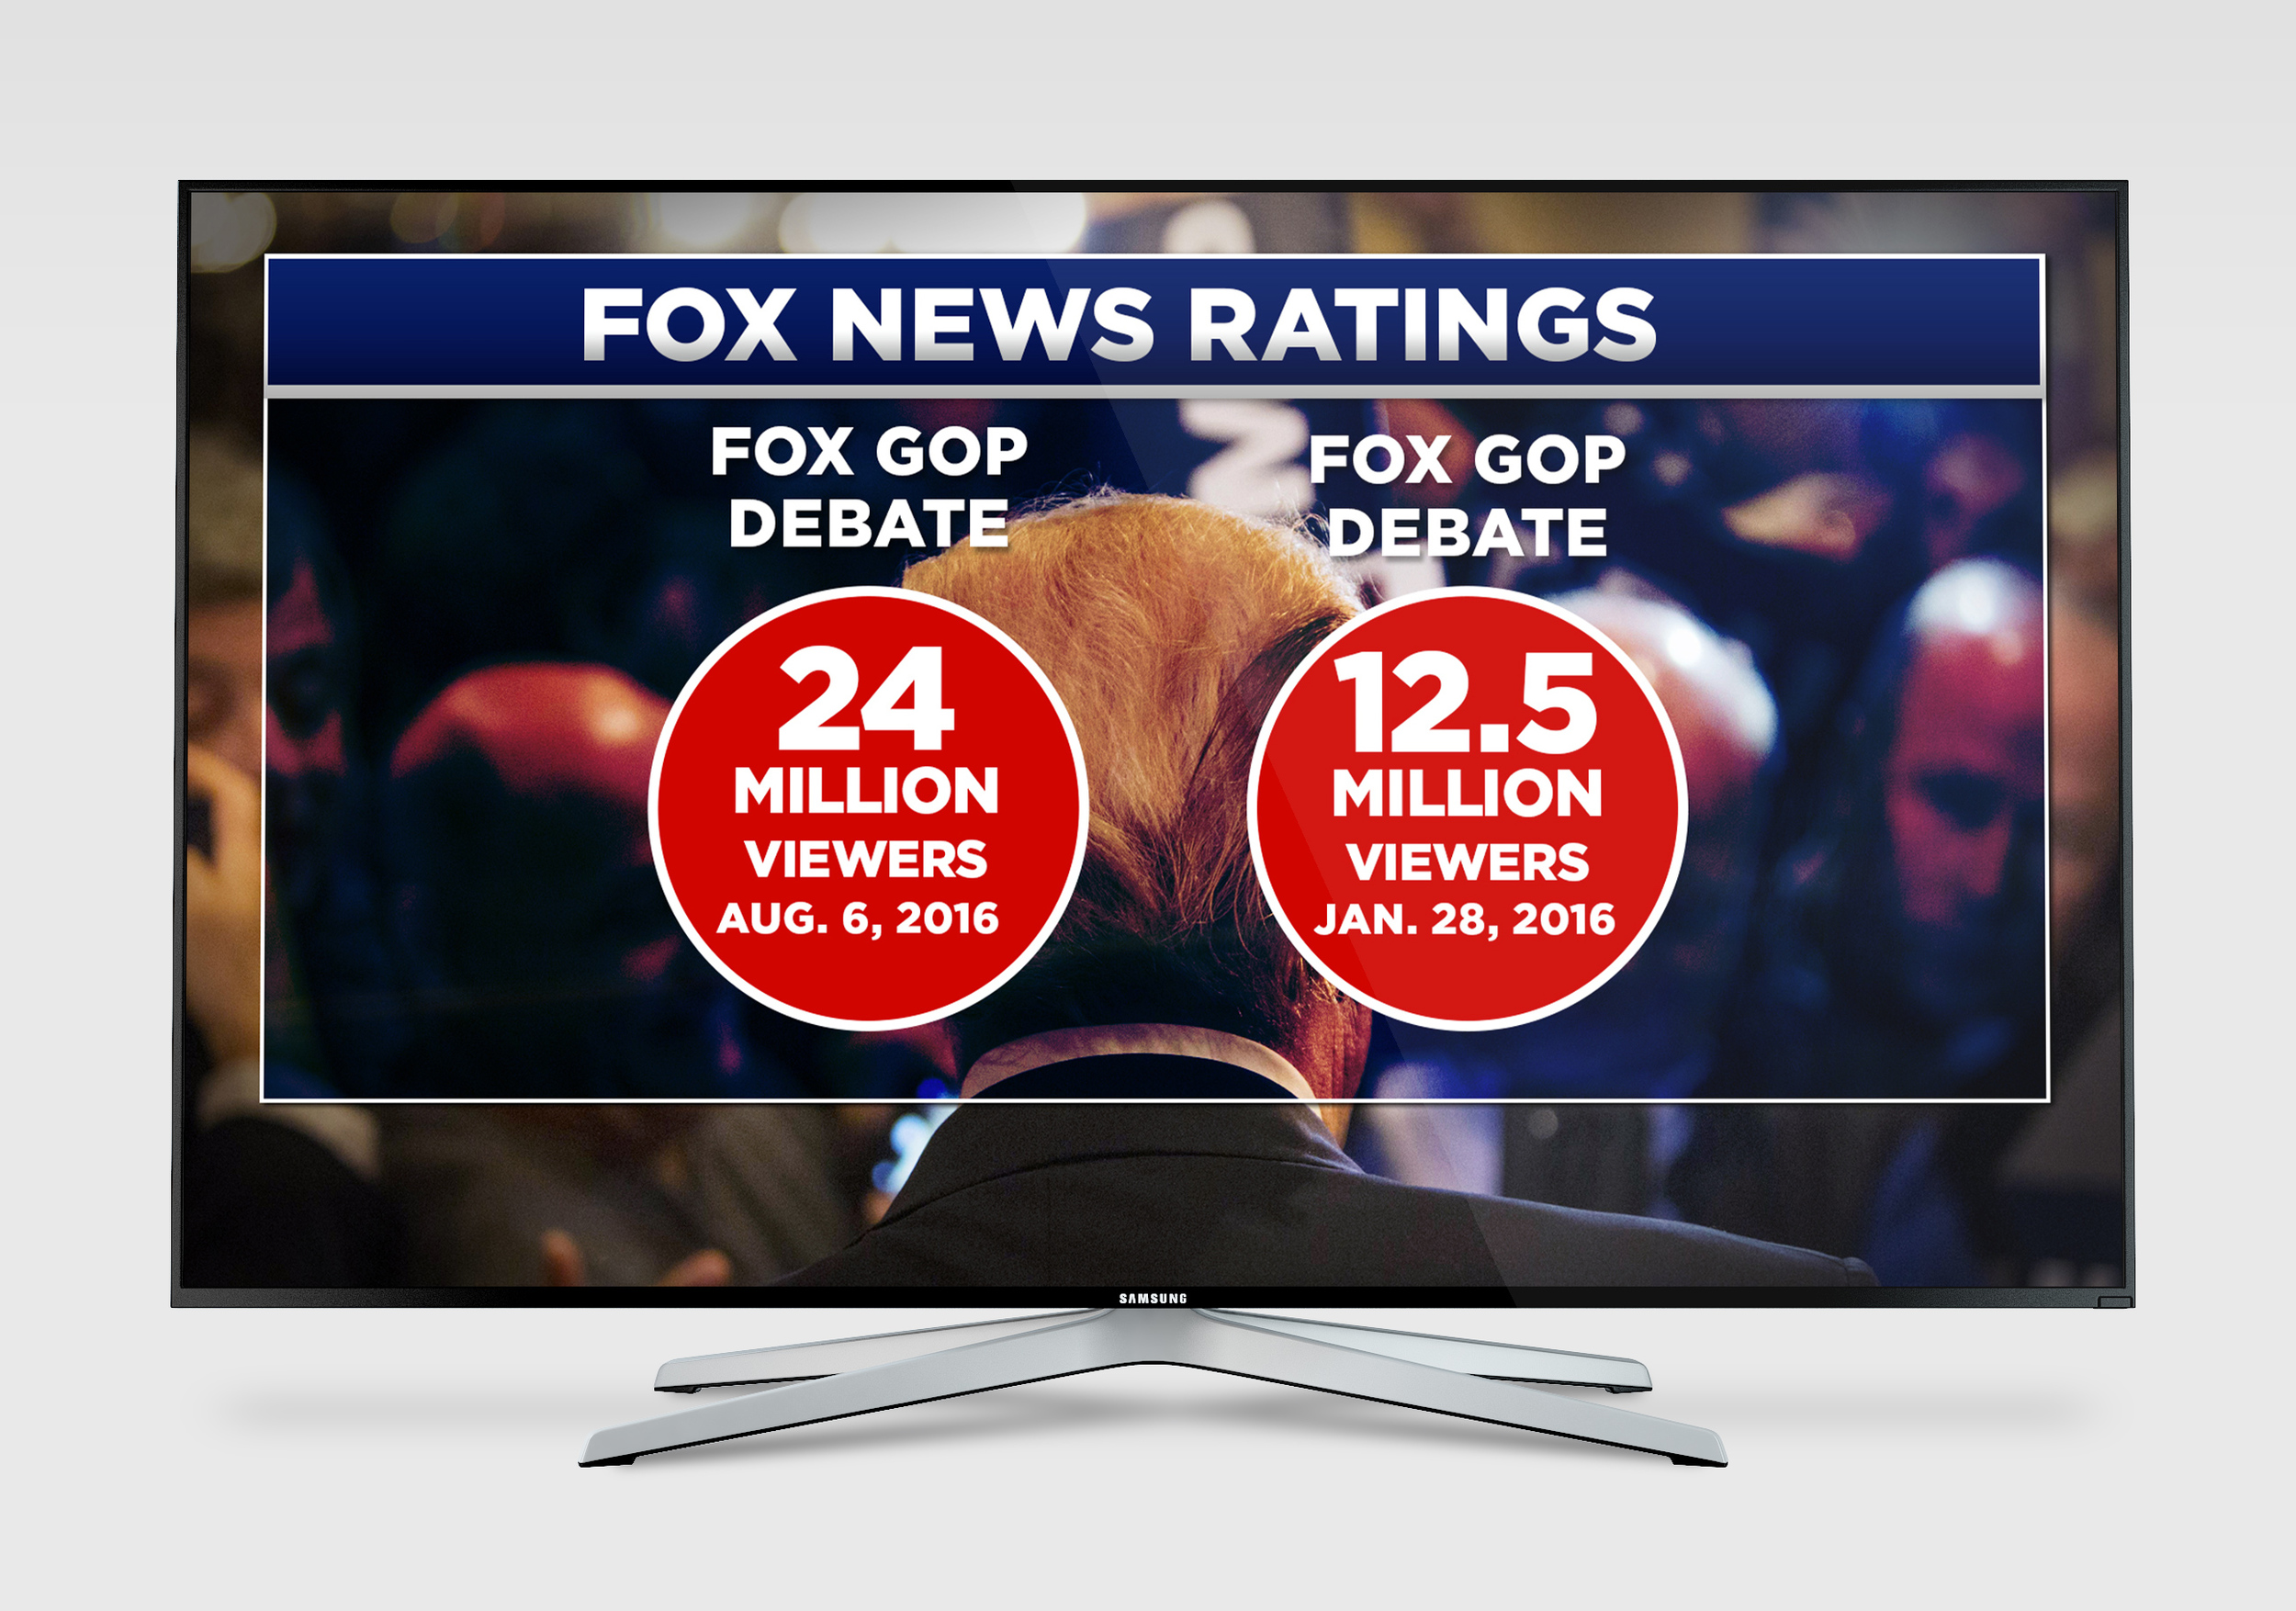 CNN-TV-MOCKUP-fox.jpg